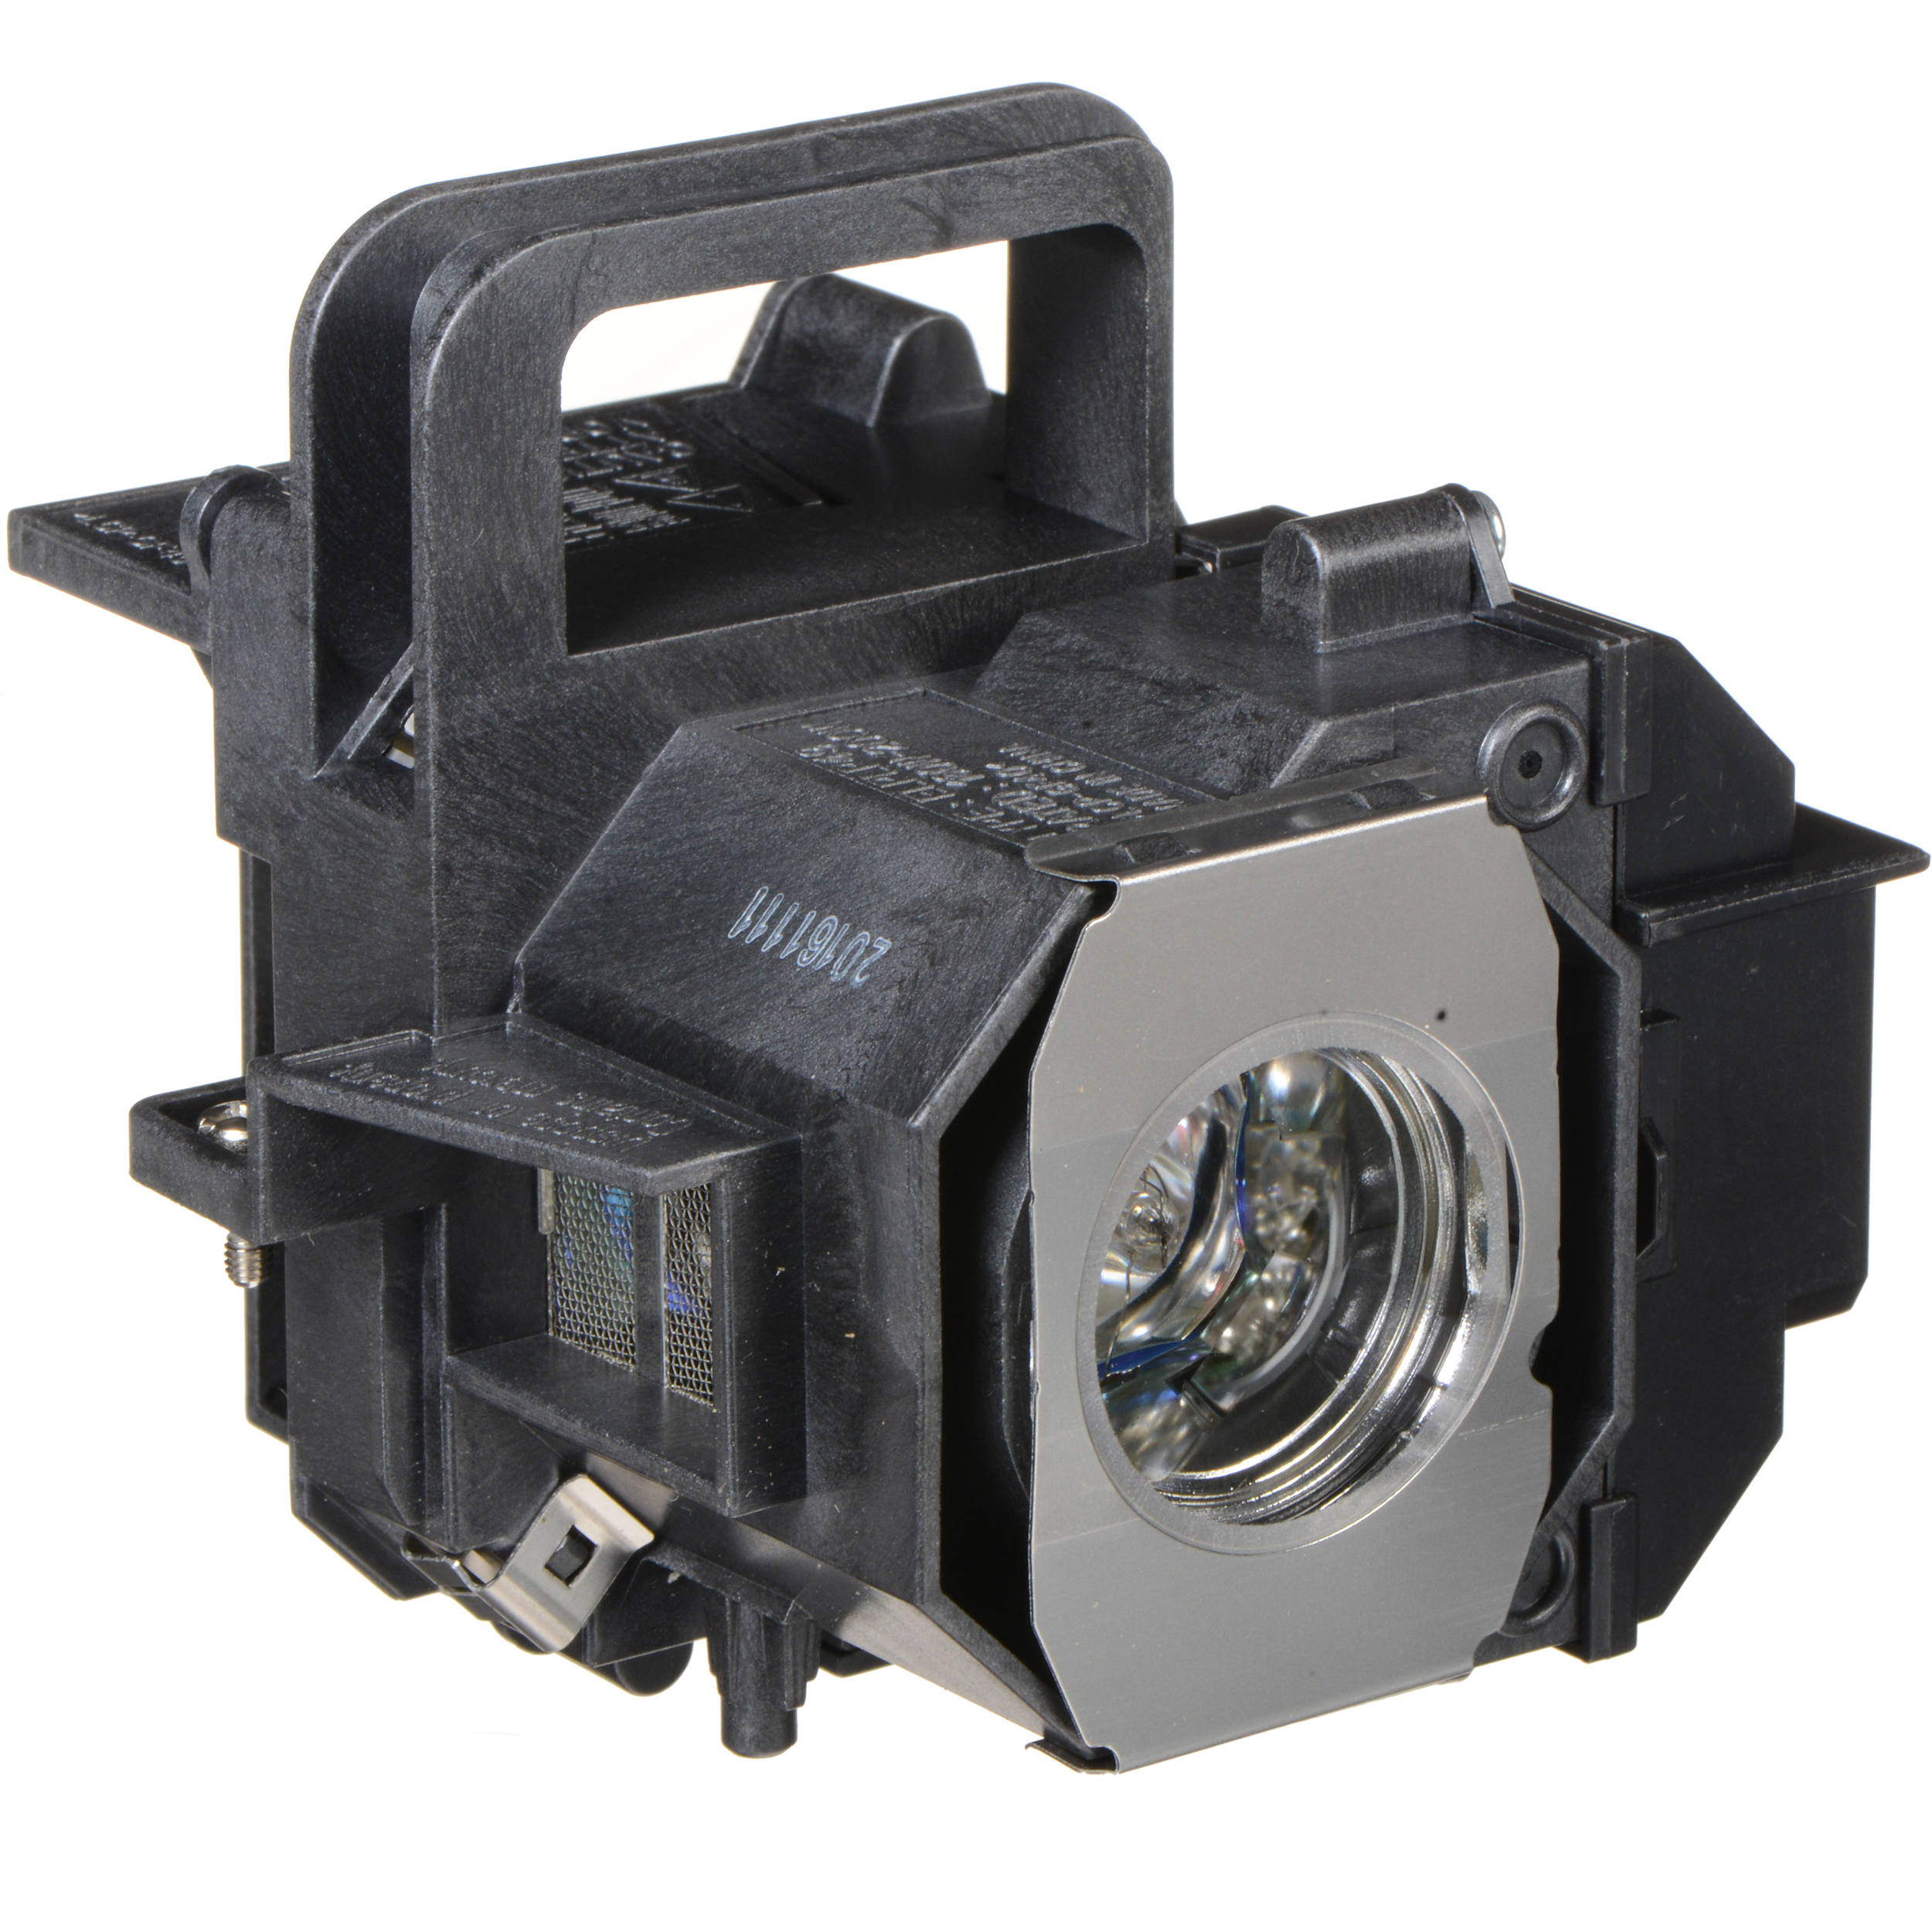 Epson E-TORL Projector Lamp for 6000/7000/8000/9000 V13H010L49